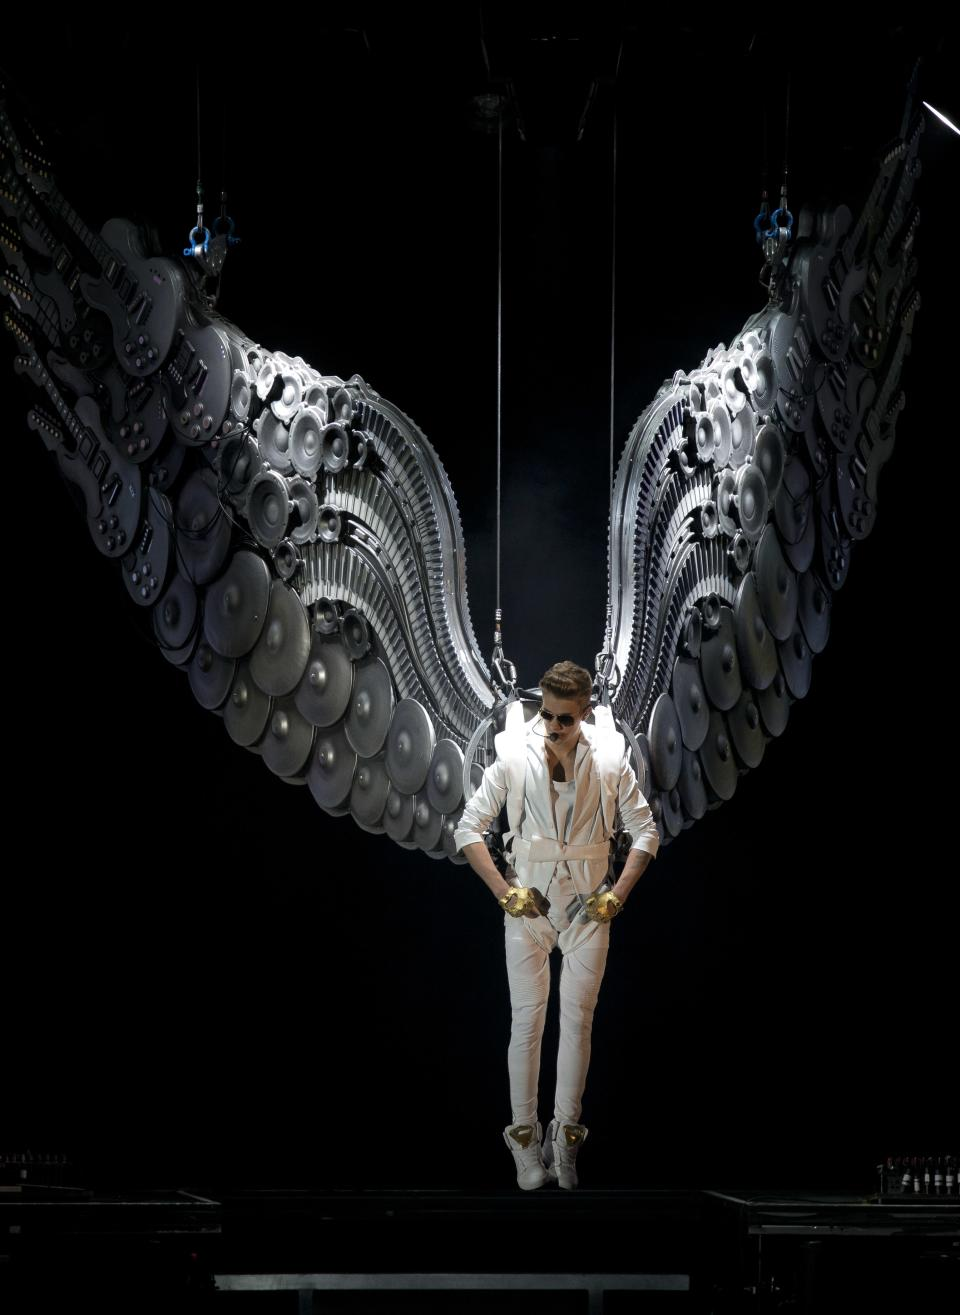 Canadian singer Justin Bieber performs at the o2 Arena in east London, Monday, March 4, 2013. (Photo by Joel Ryan/Invision/AP)